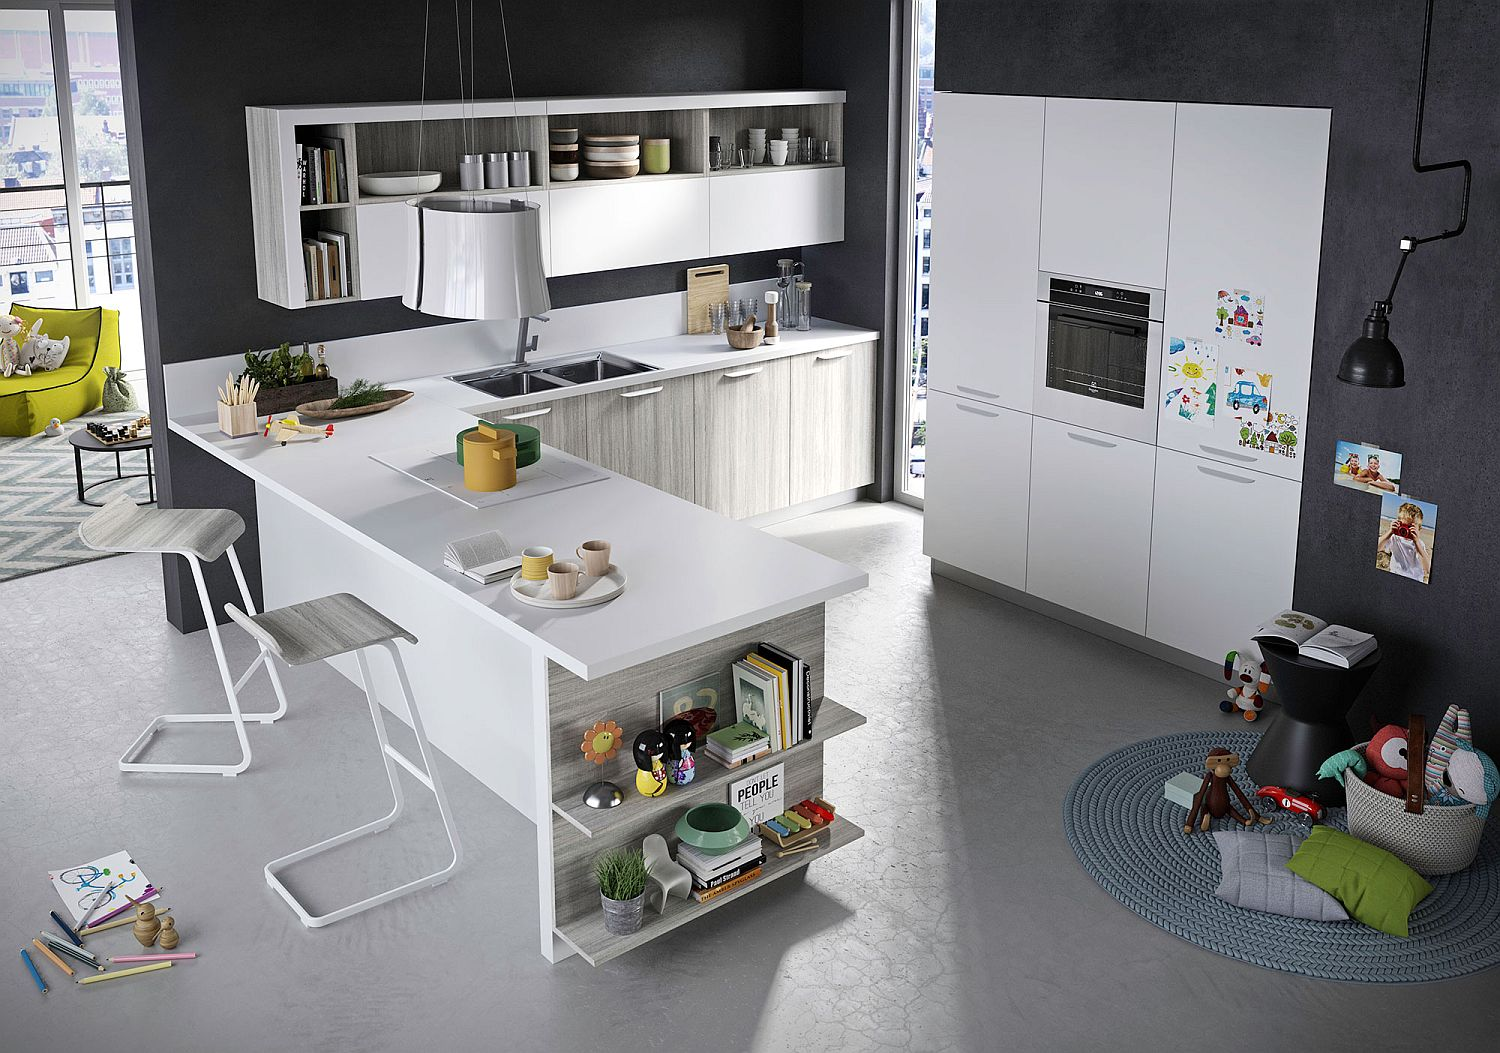 Refined adaptable contemporary kitchen with an edgy twist